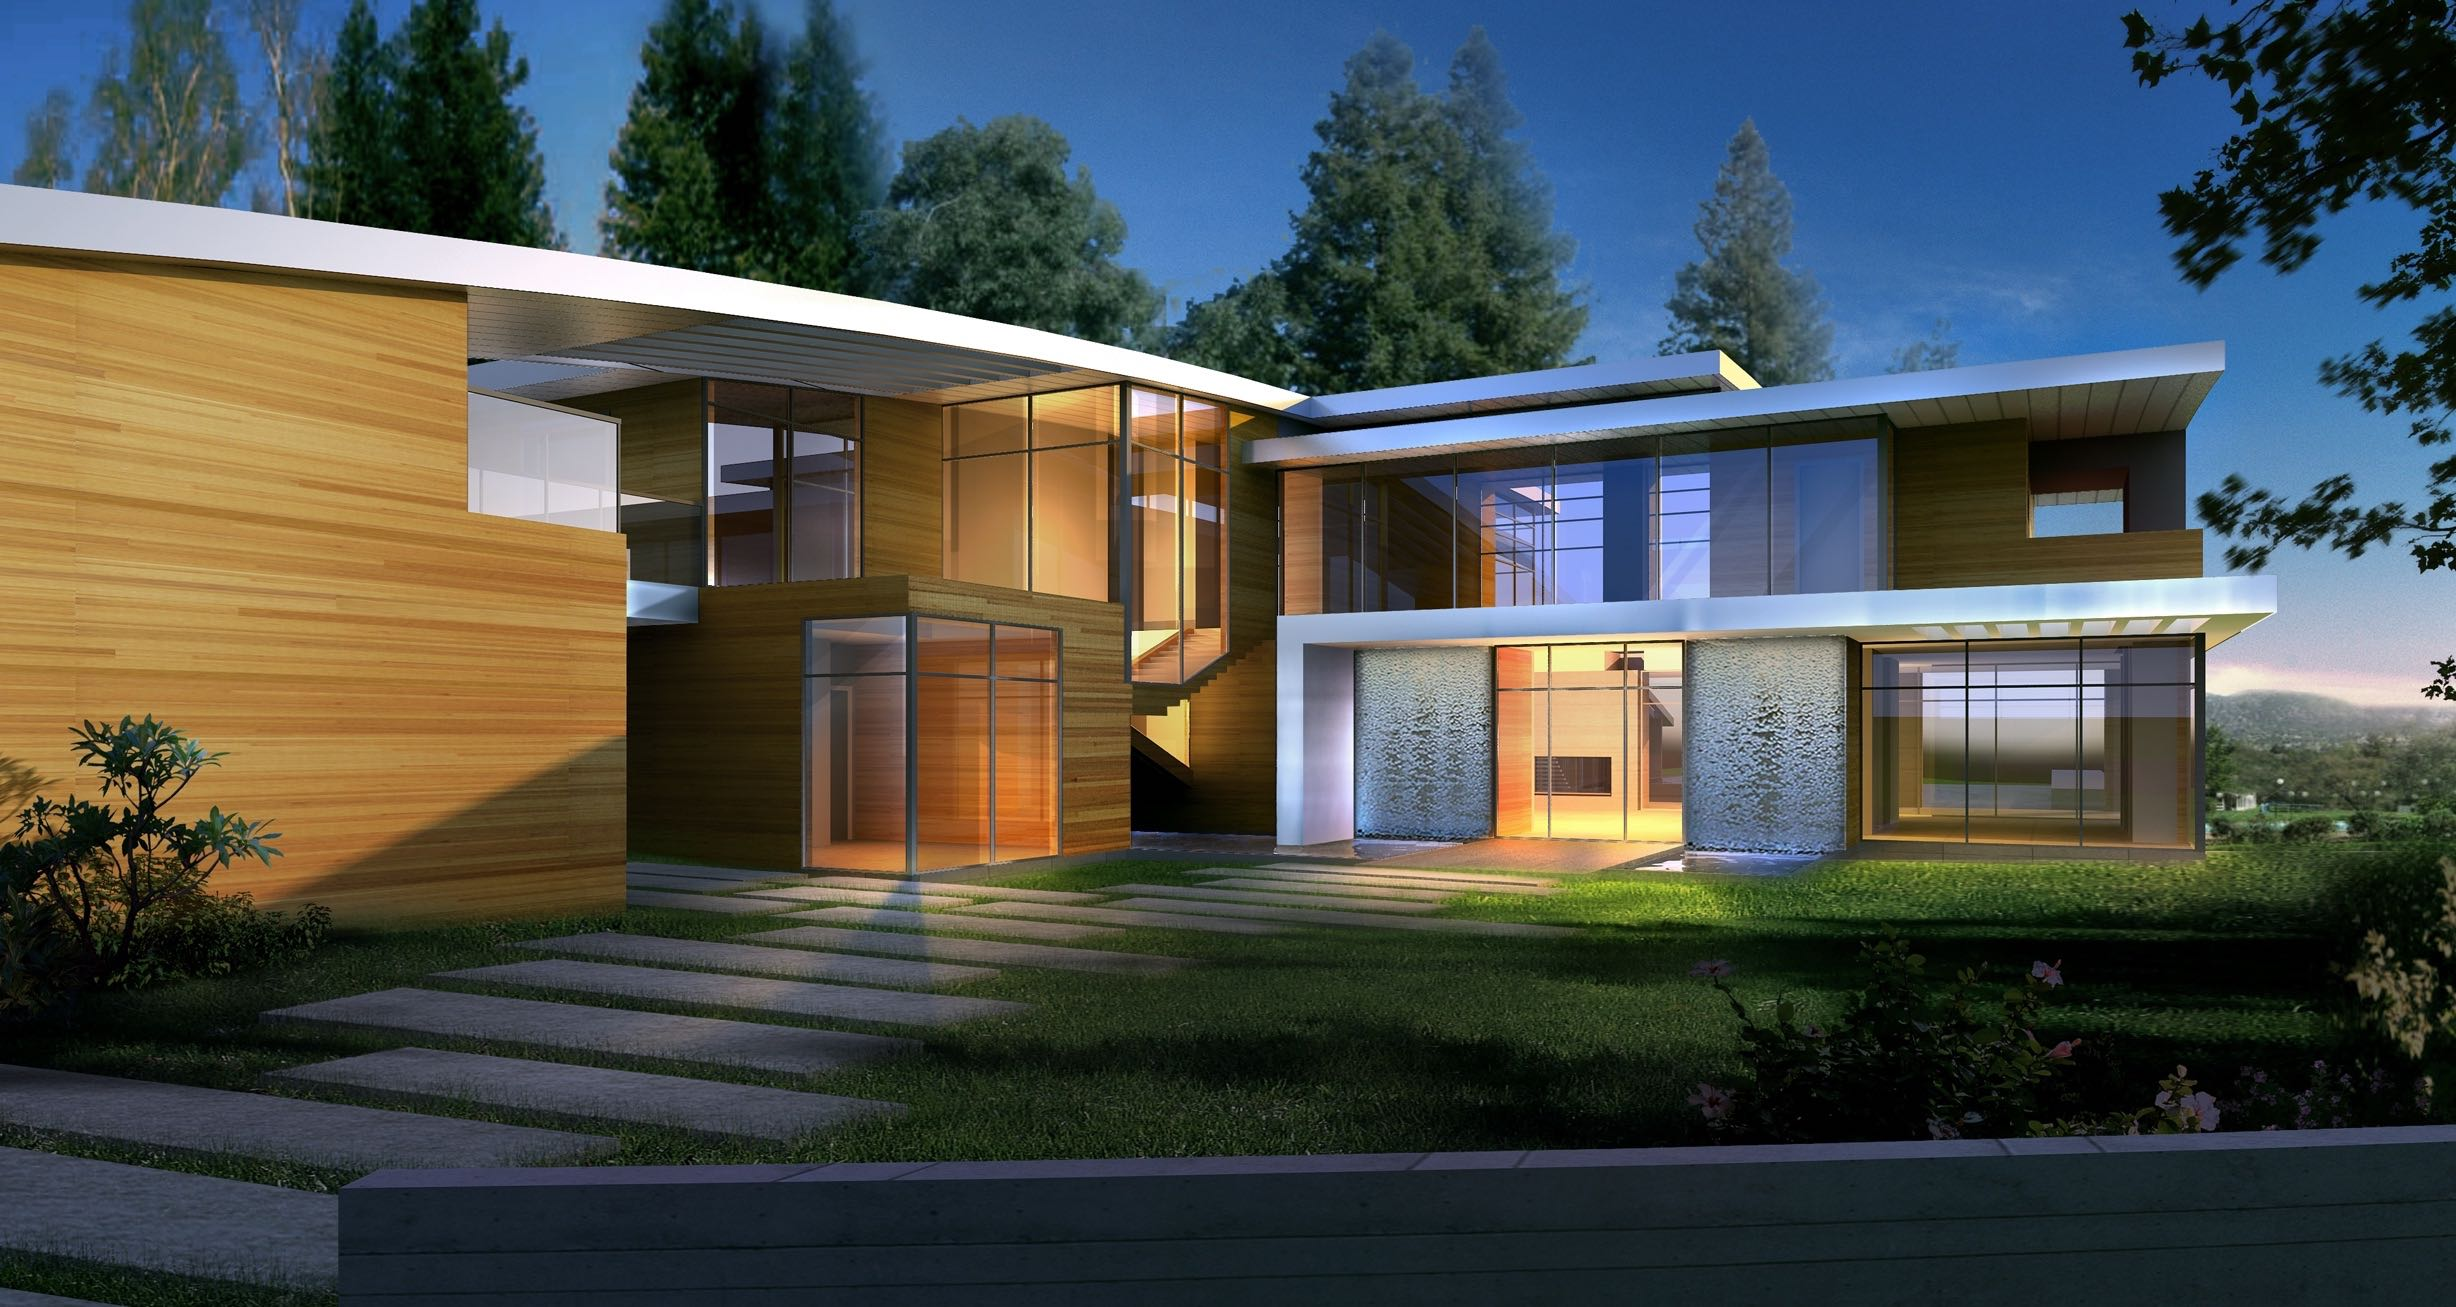 Completed at Landry Design Group